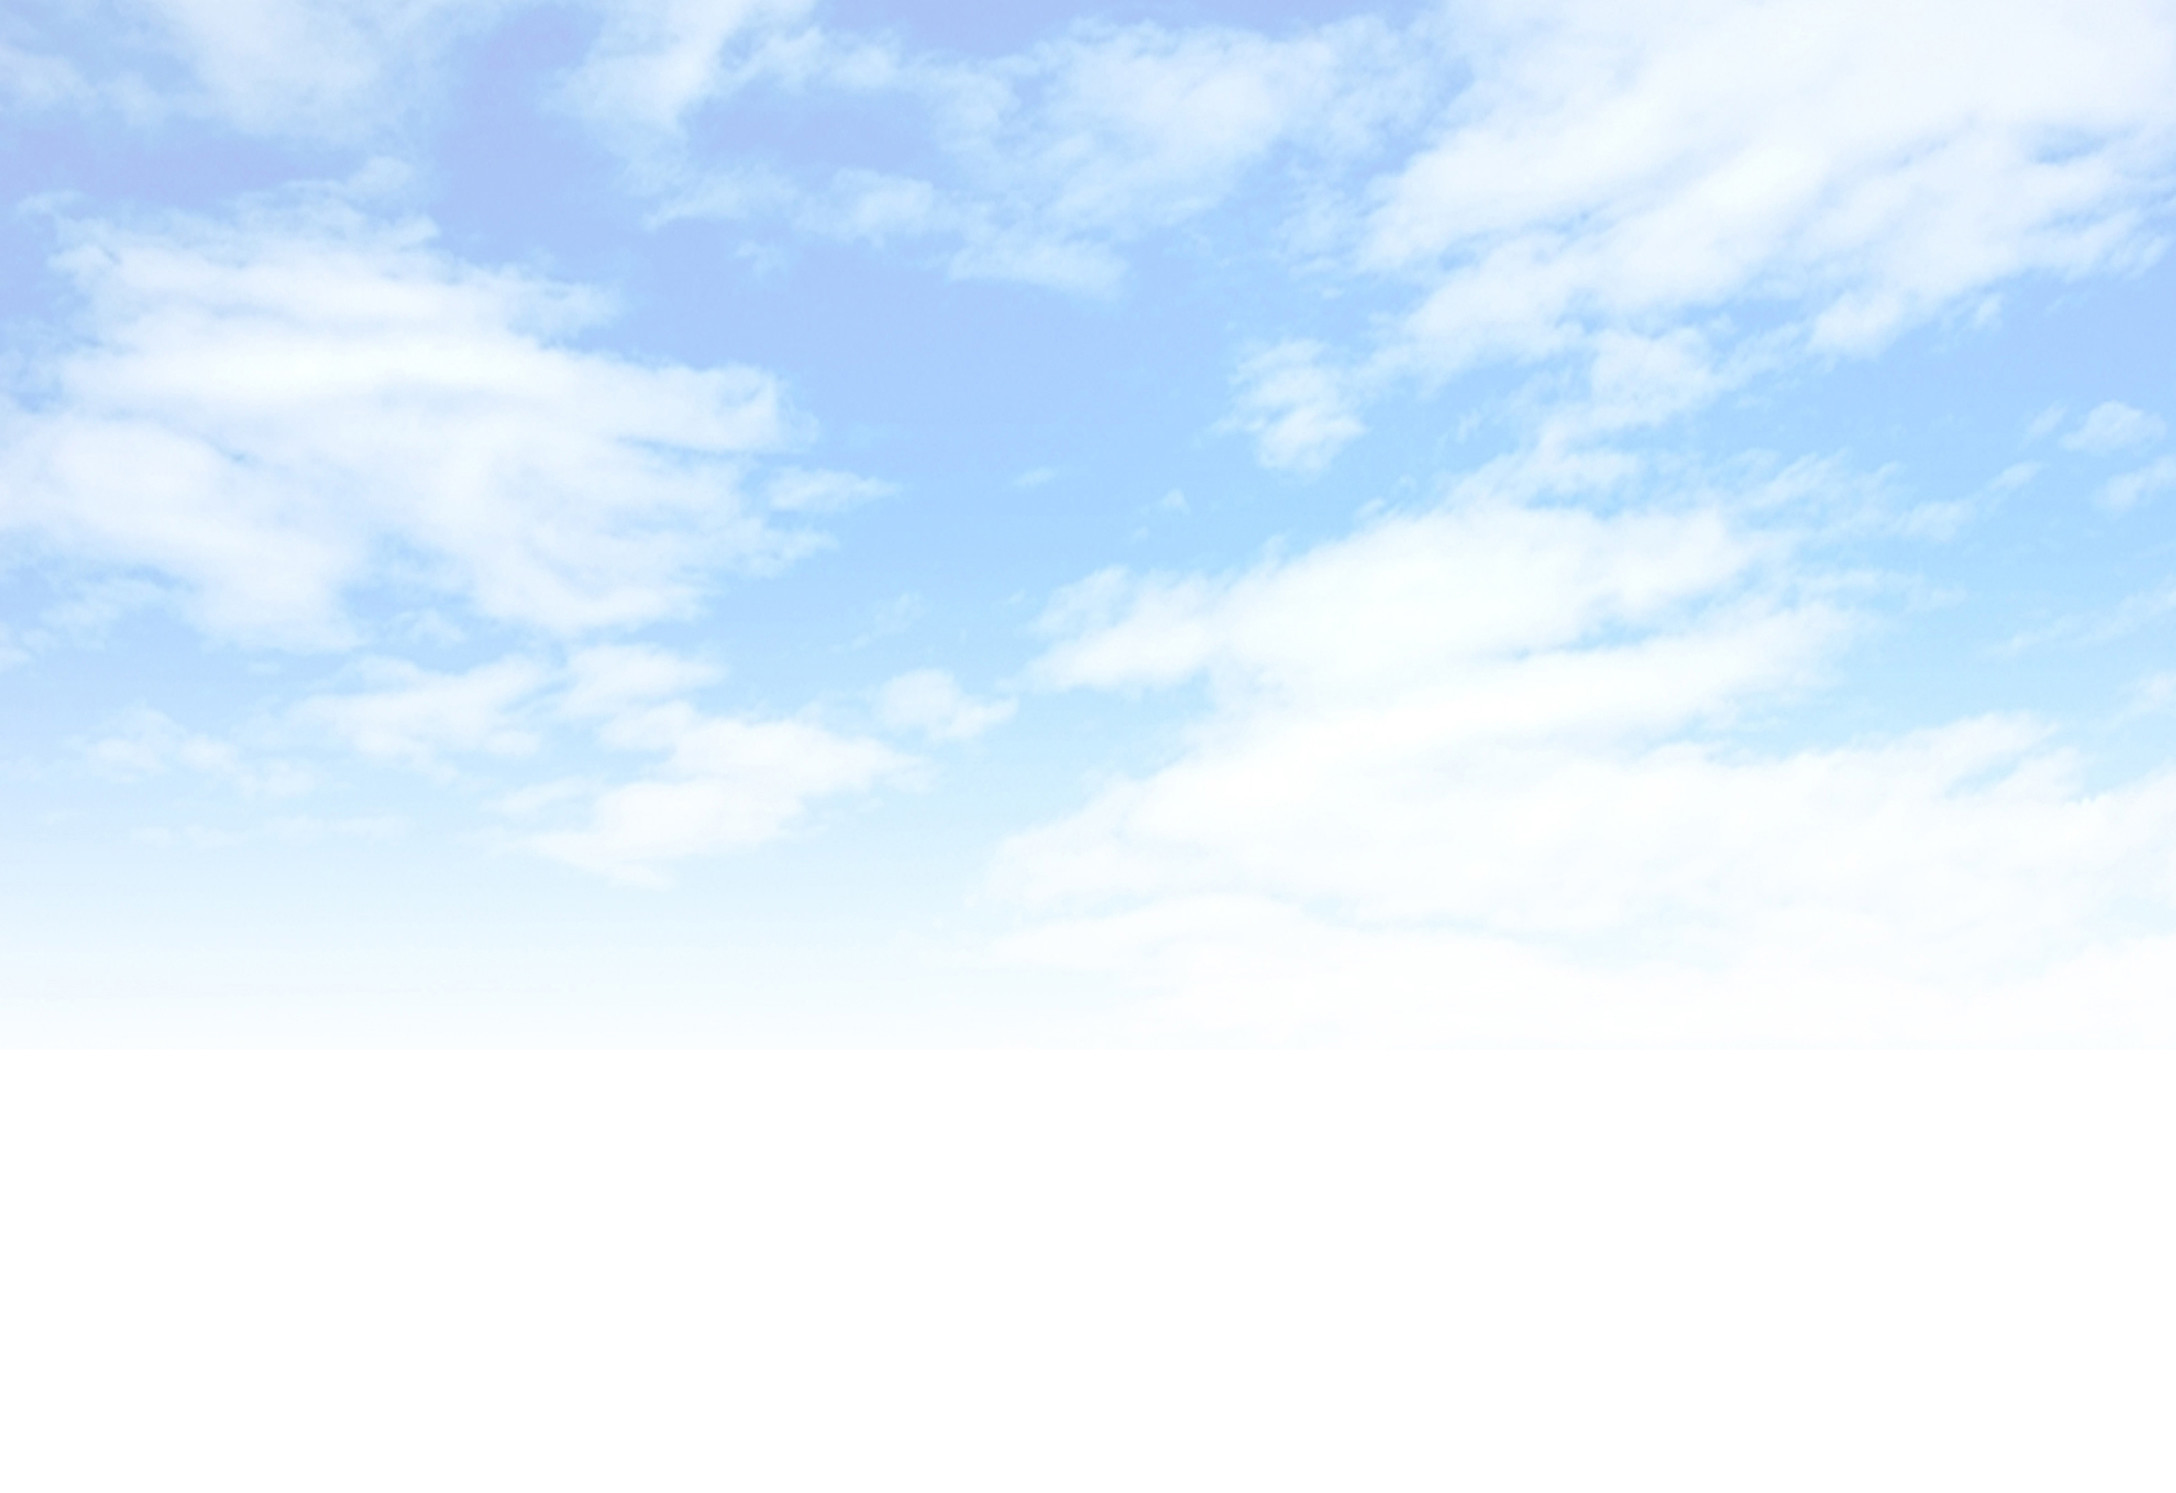 2176x1493 Cloud Web Background Witco Inc - Cloudy Sky Background PNG